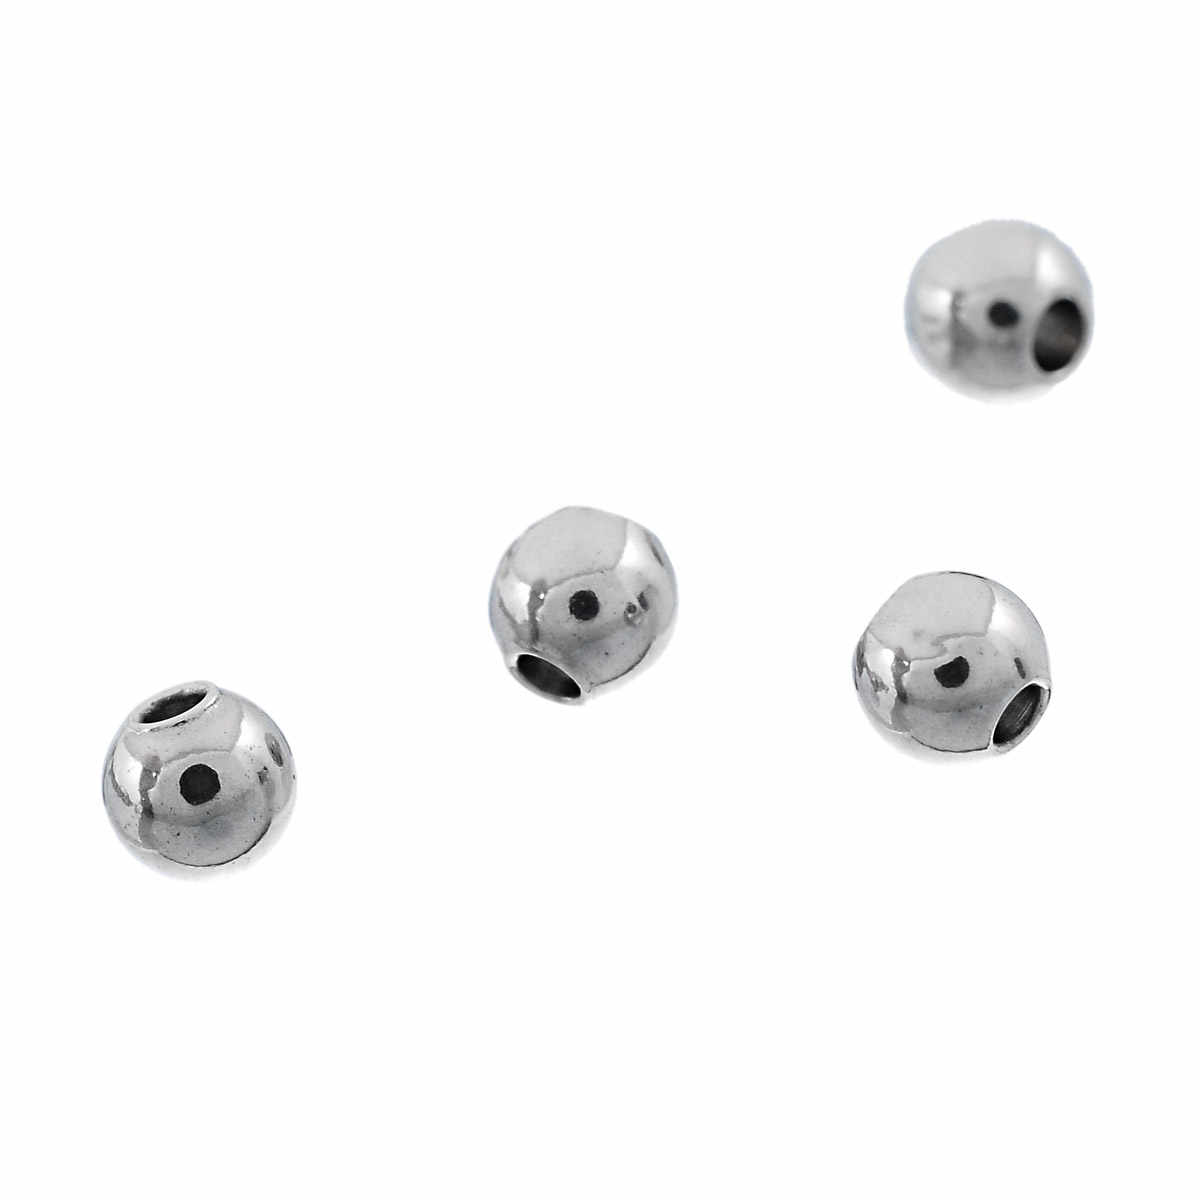 """DoreenBeads Stainless Steel Spacer Beads Round Silver Tone About 3mm( 1/8"""") Dia, Hole:Approx 1mm, 9 Pieces 2017 new"""